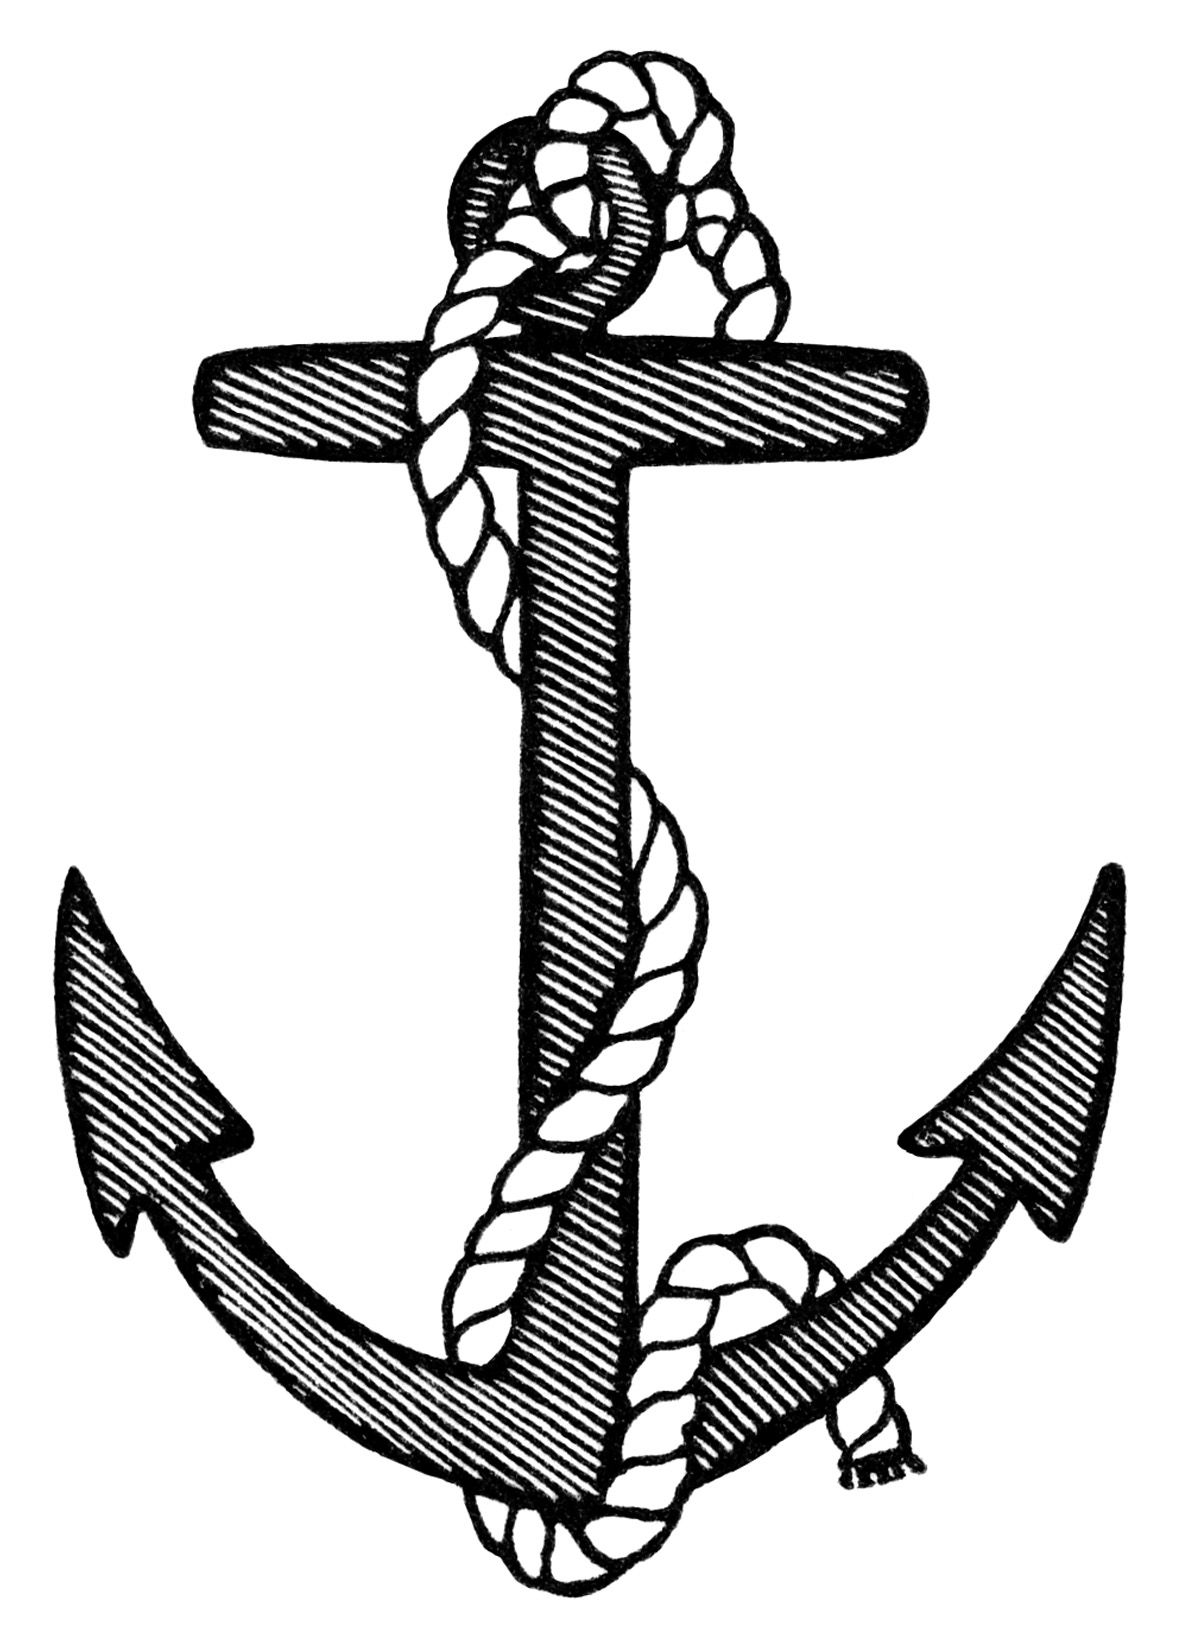 Crossed anchors best pinterest. Anchor clipart black and white